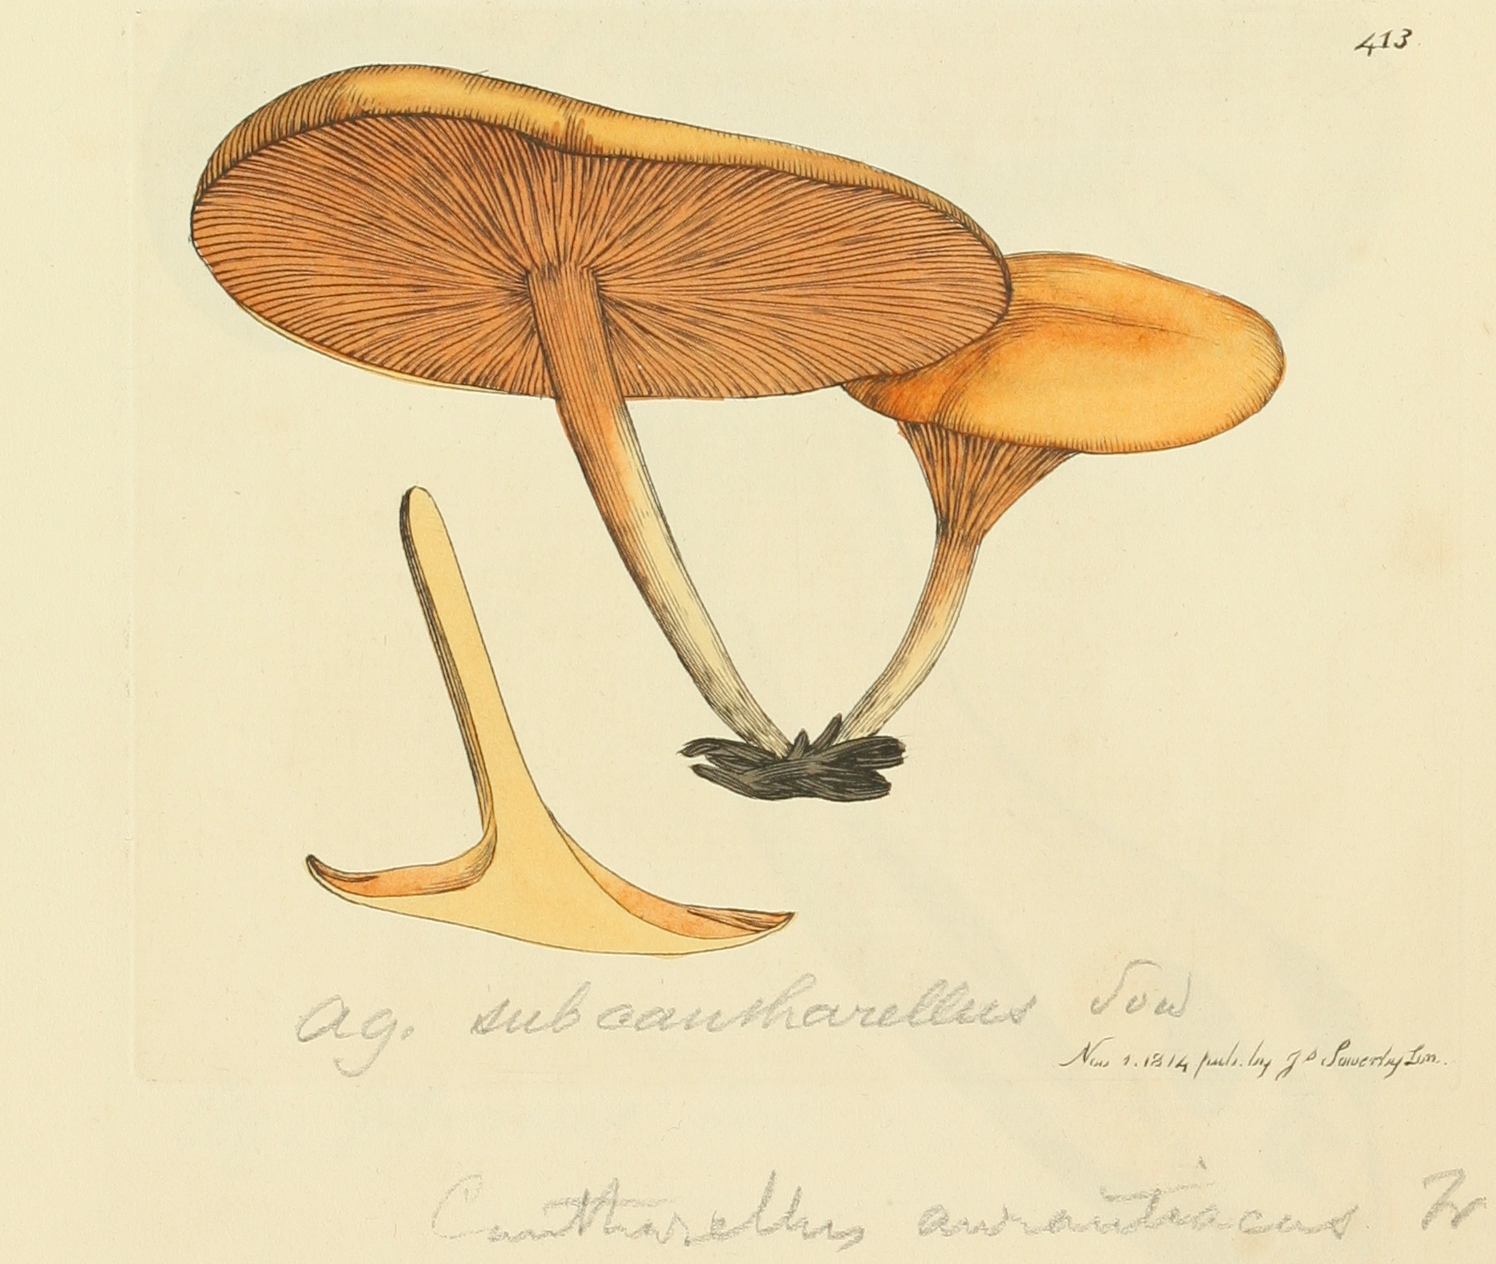 Photo of Hygrophoropsis aurantiaca ATCC 28755 v1.0